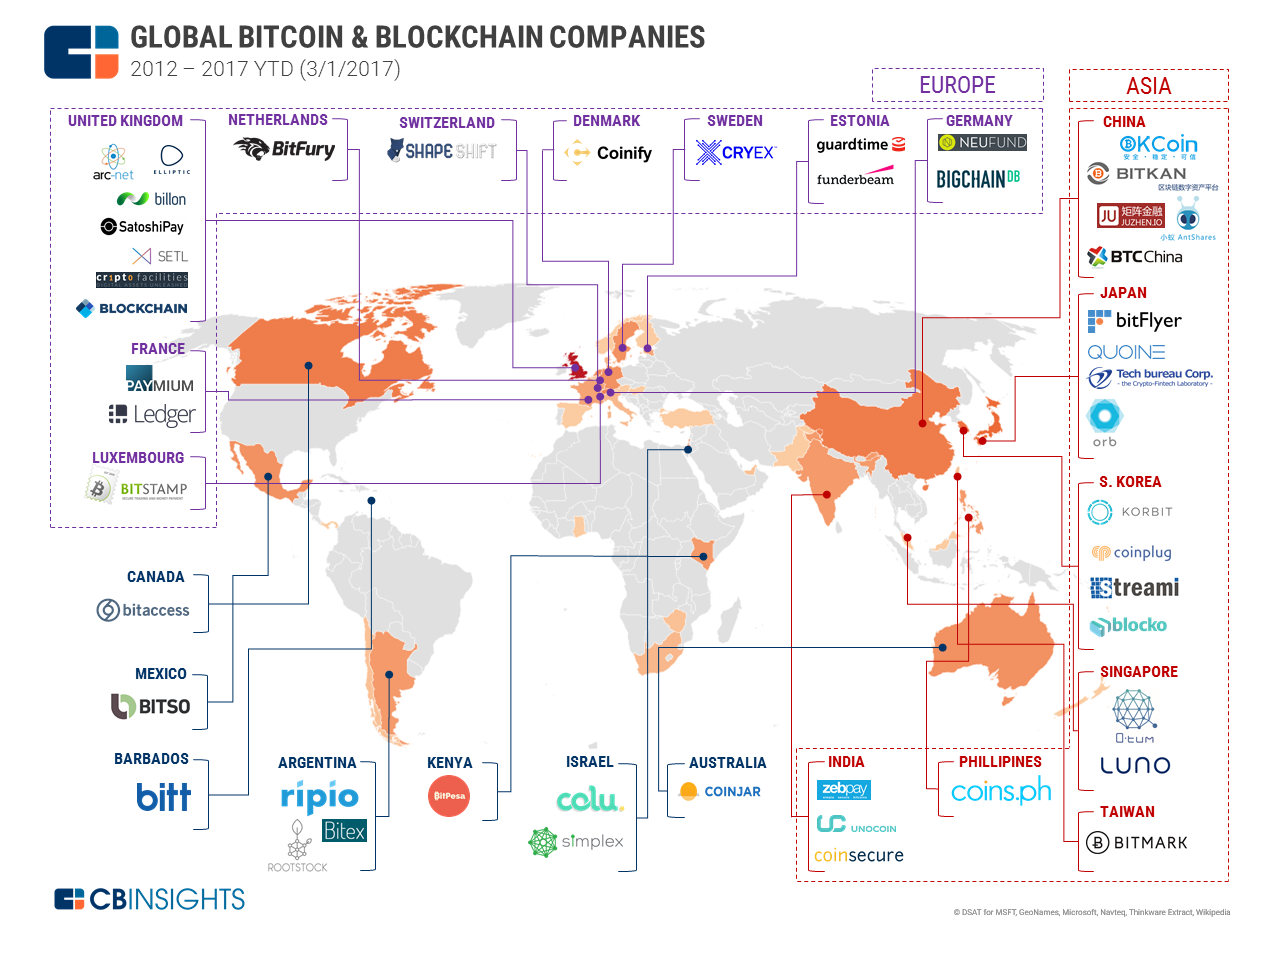 Картинки по запросу GLOBAL CRYPTOCURRENCIES NETWORK INFOGRAPHIC